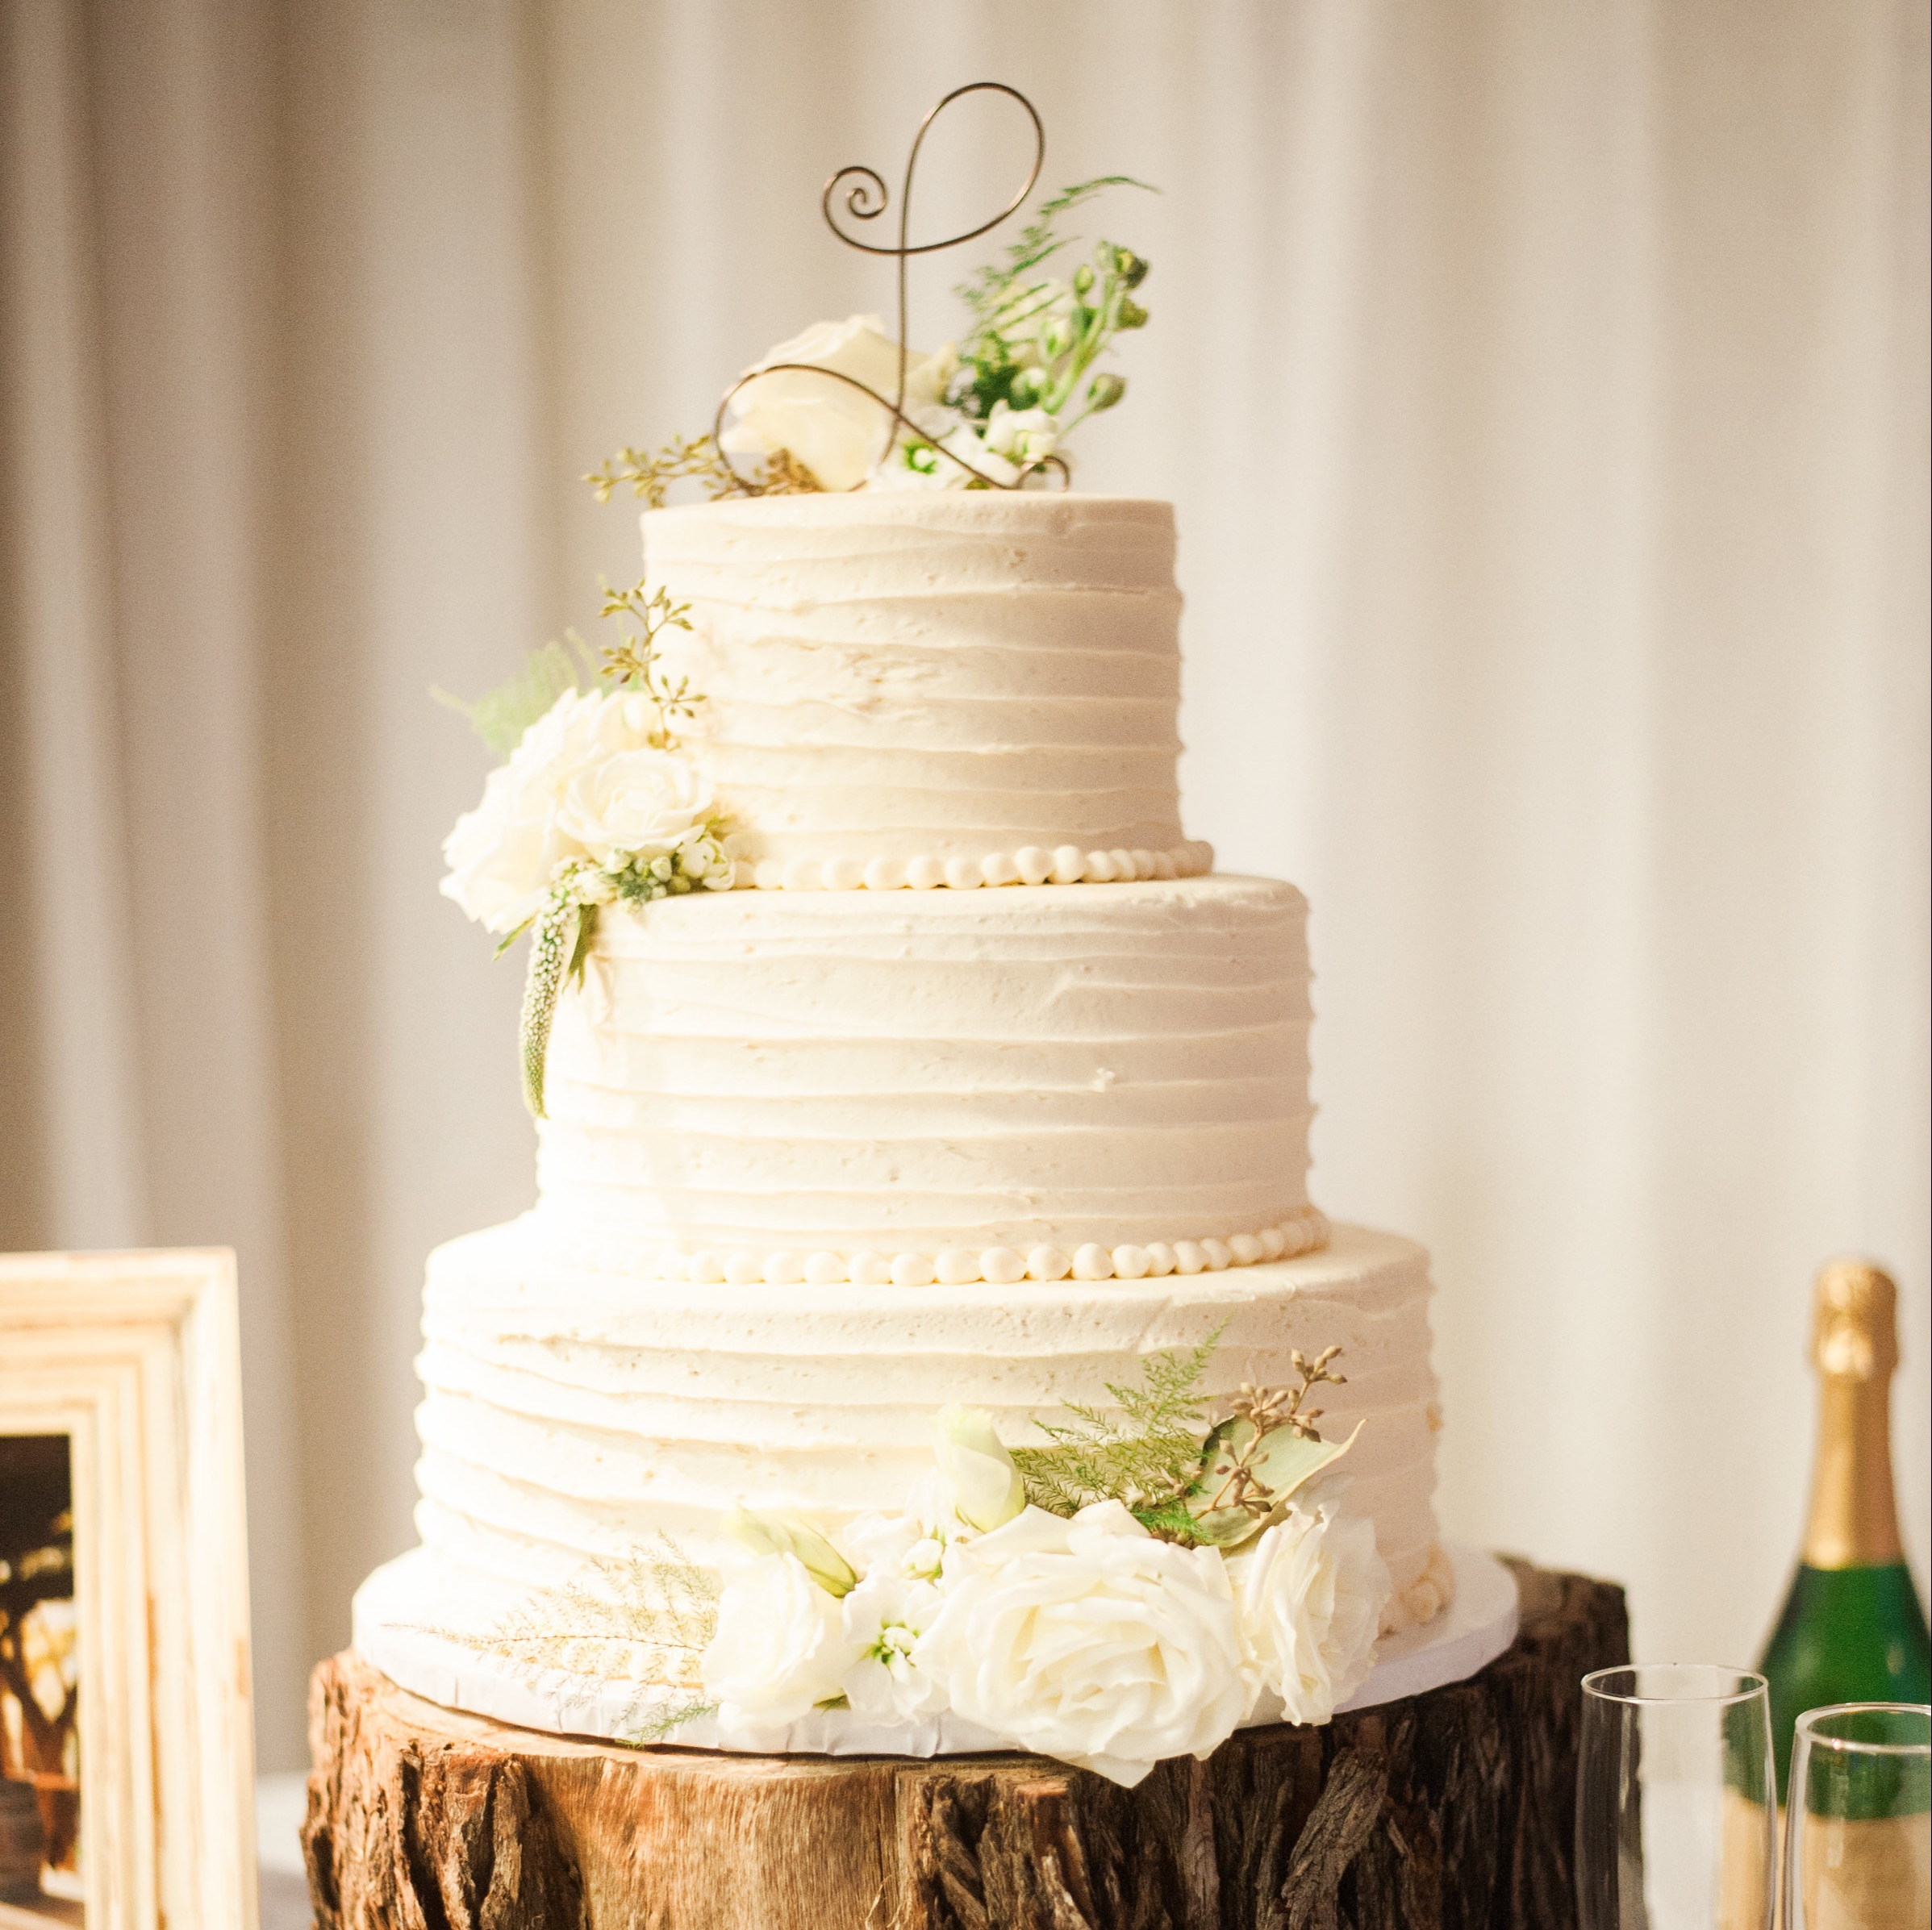 Wedding Cakes: Hy-Vee Cakes, Prices, & How To Order